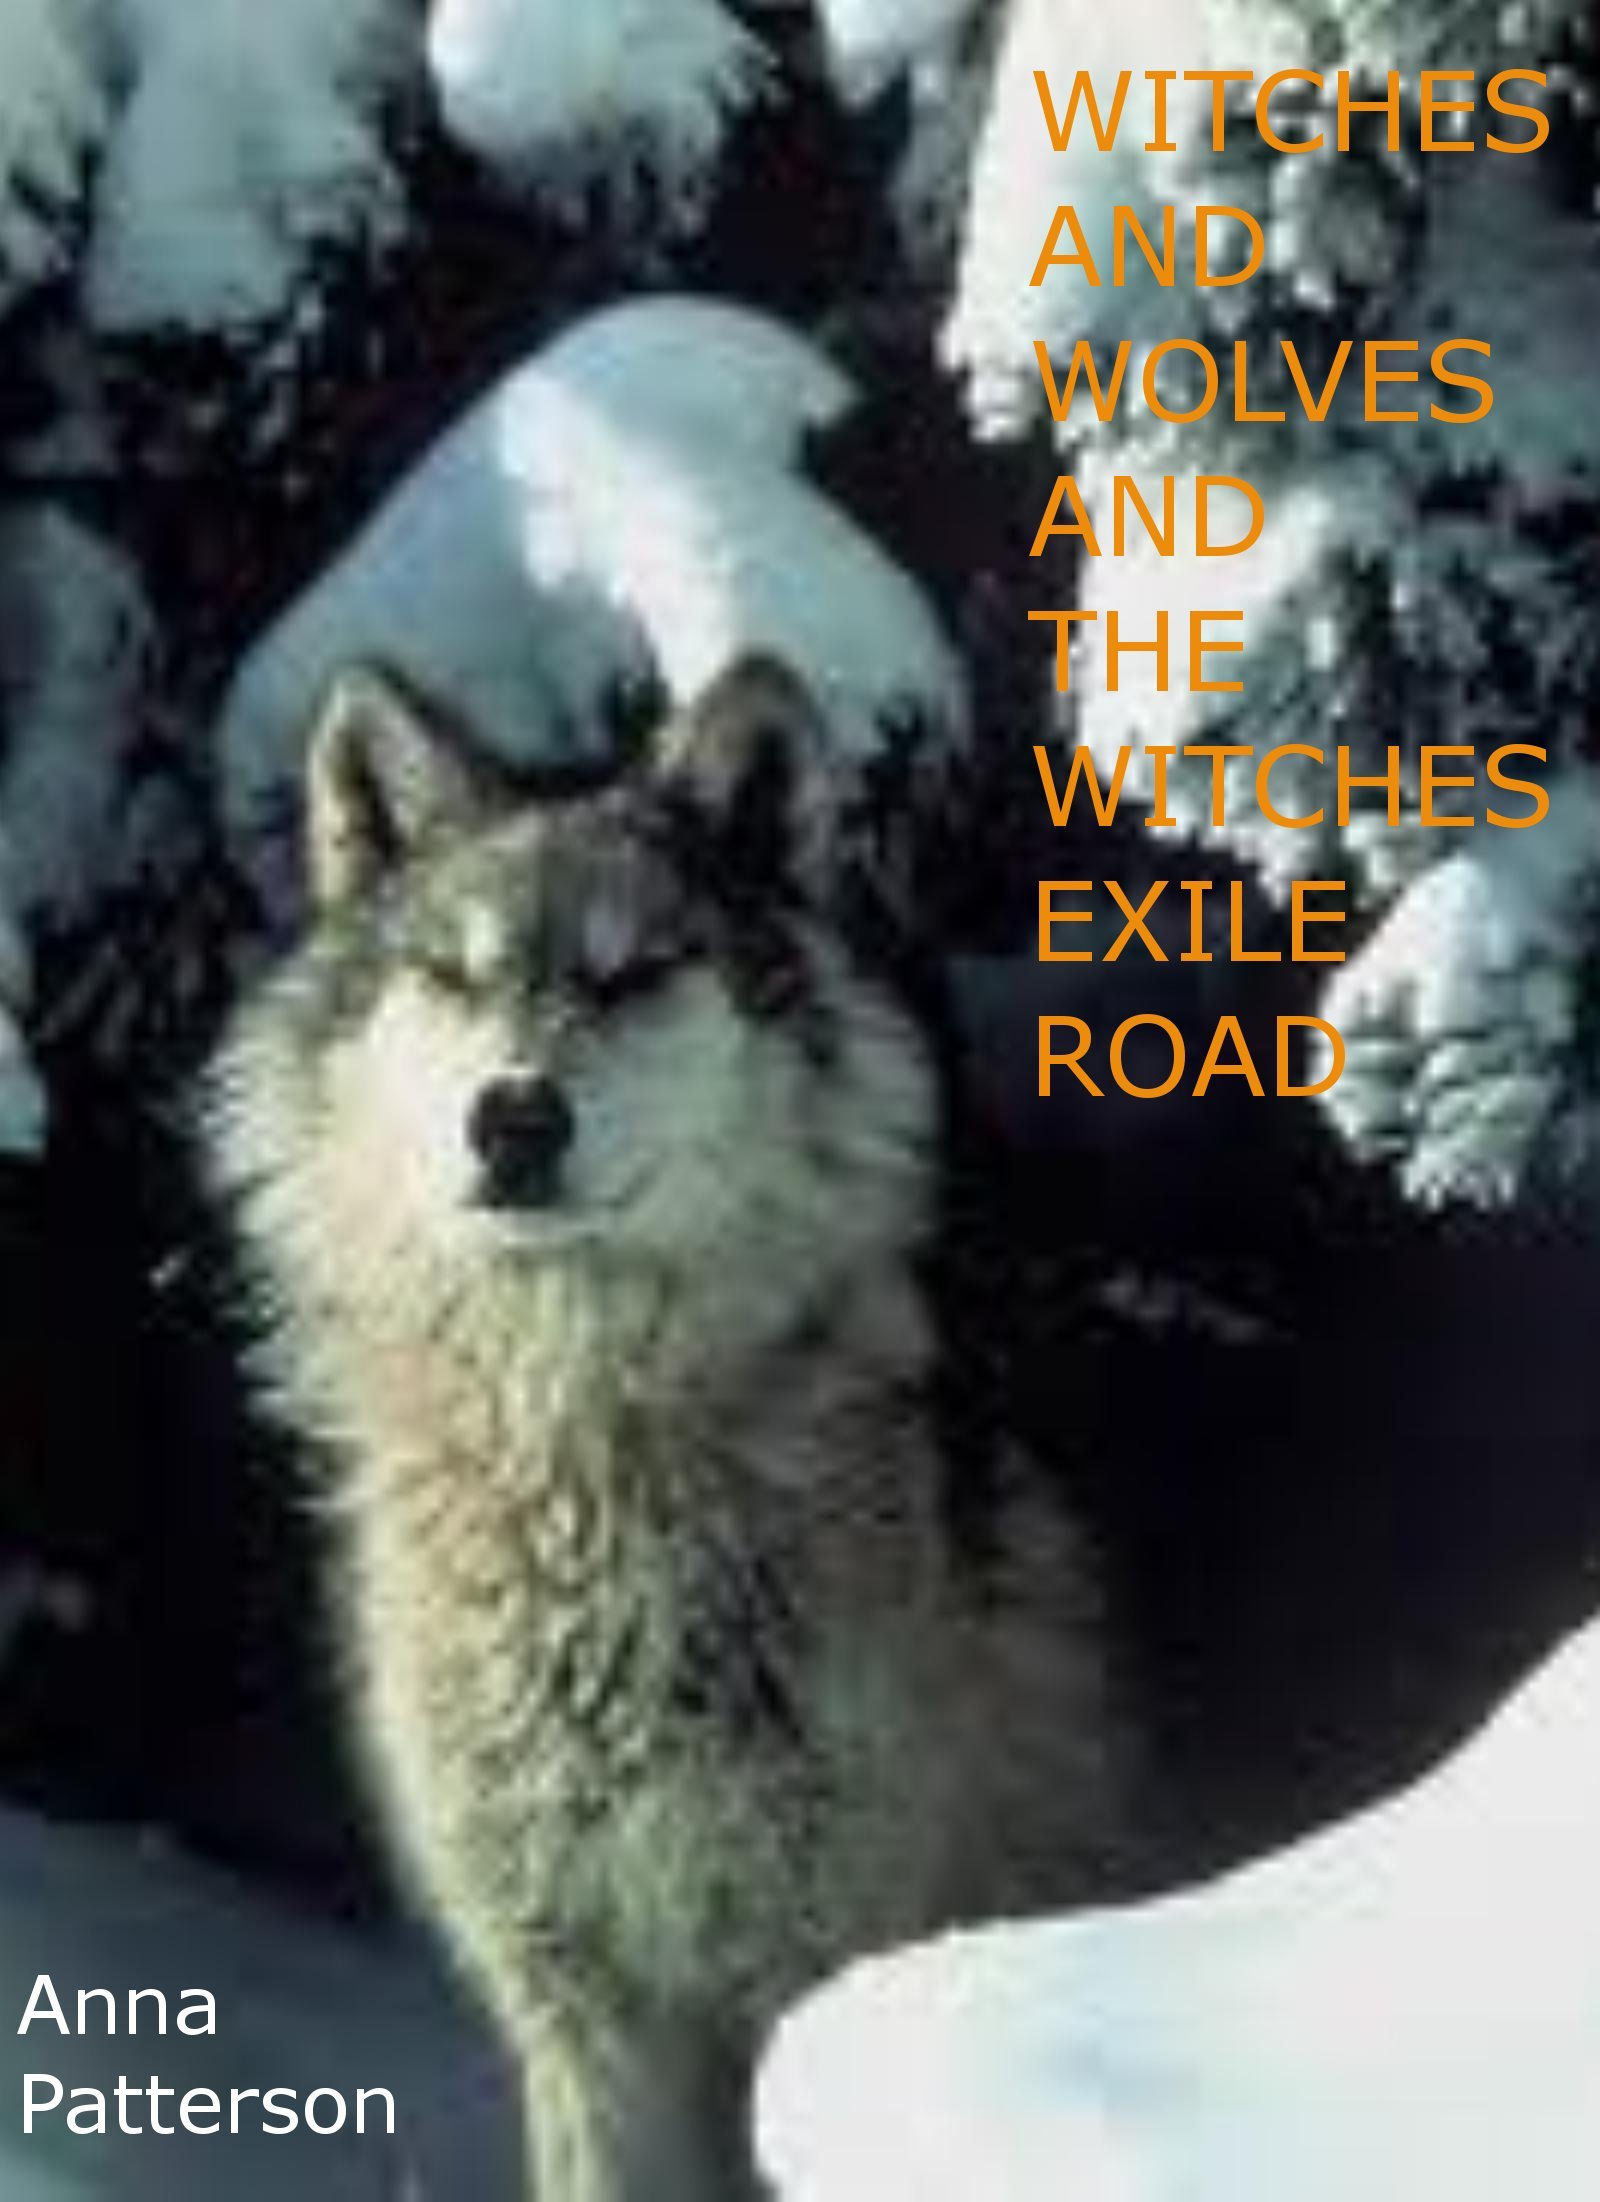 Witches and Wolves and the Witches Exile Road